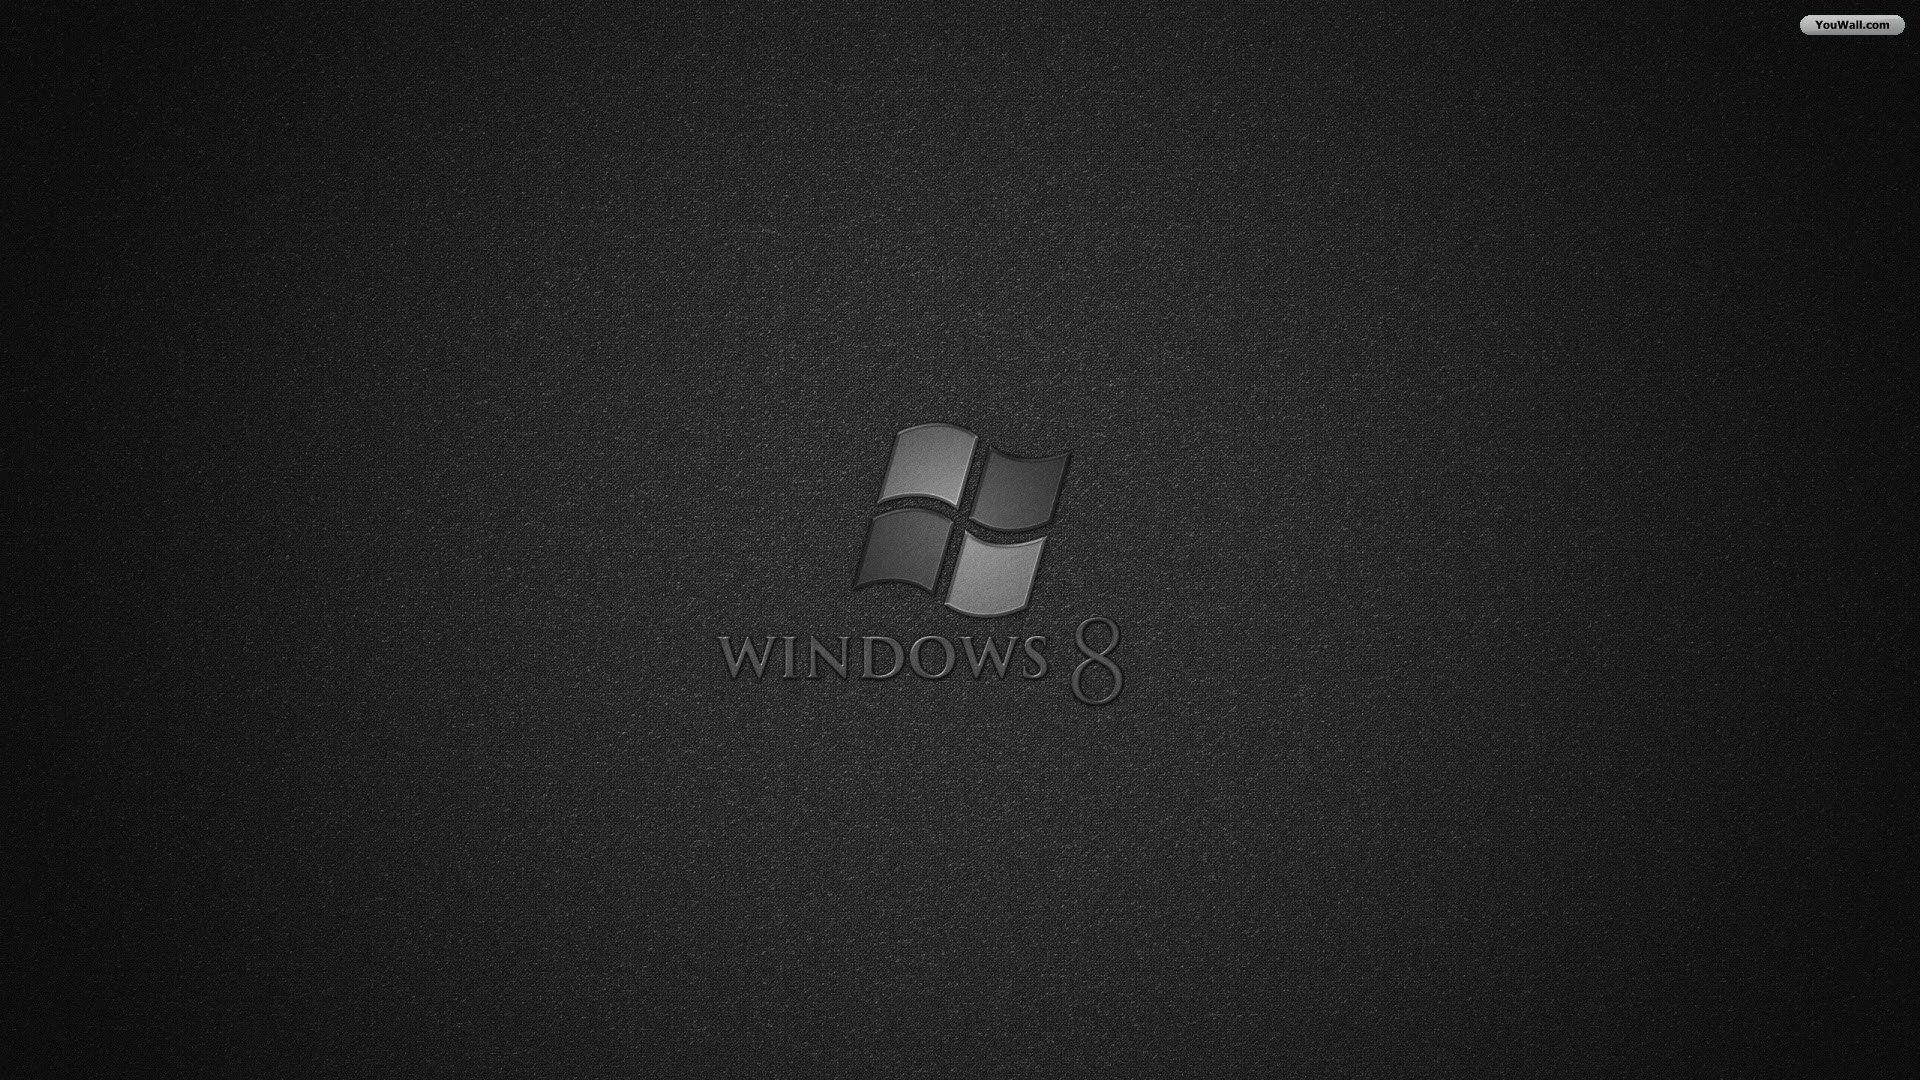 Black windows wallpapers wallpaper cave for Windows 8 bureaublad